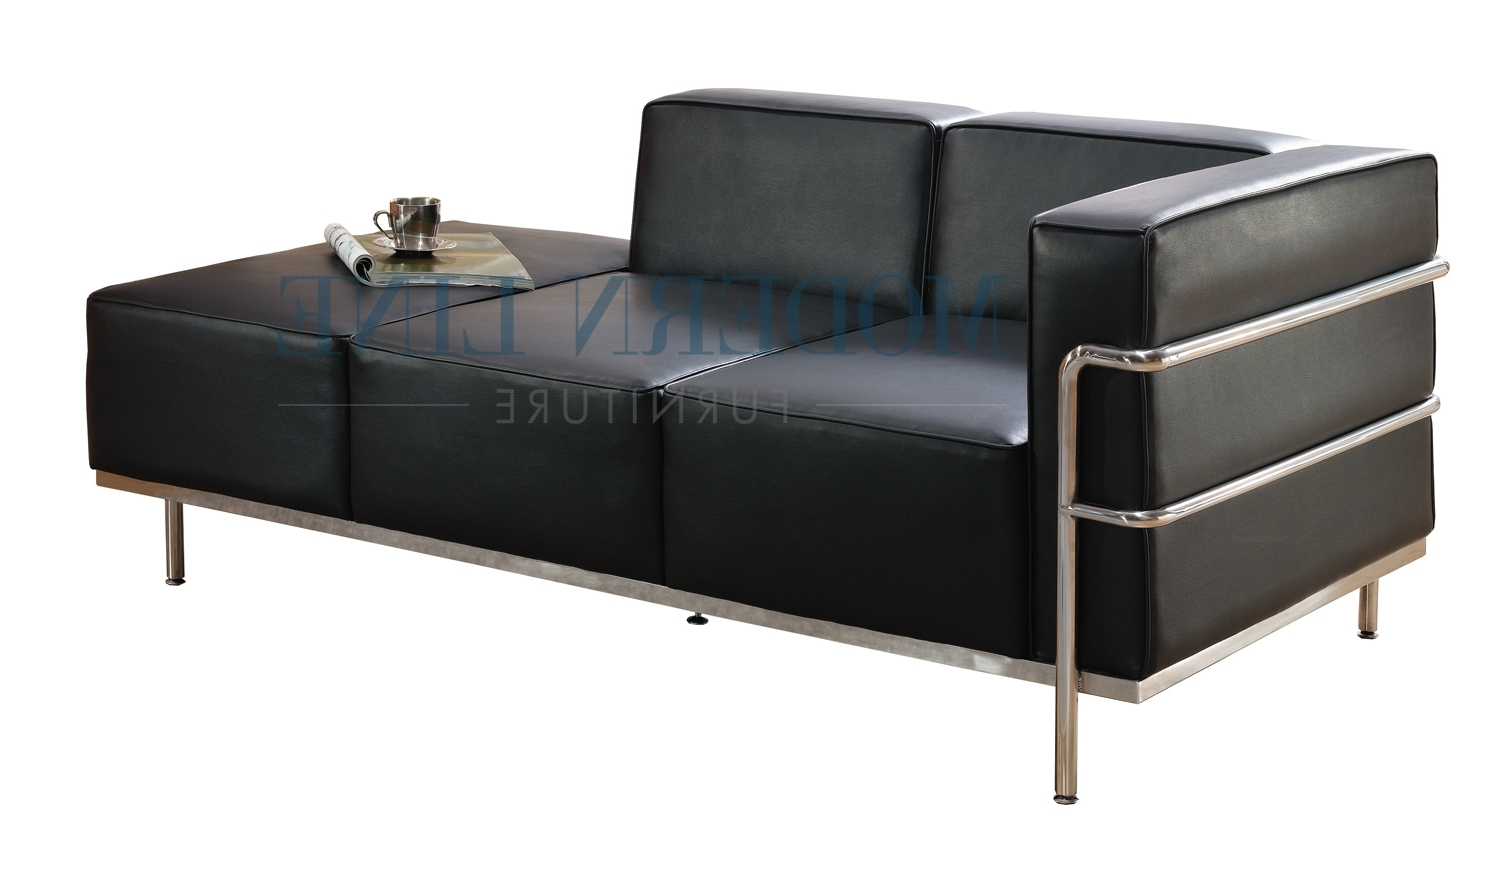 2017 Furniture: Elegant Black Leather Chaise For Living Room Pertaining To Black Leather Chaises (View 2 of 15)